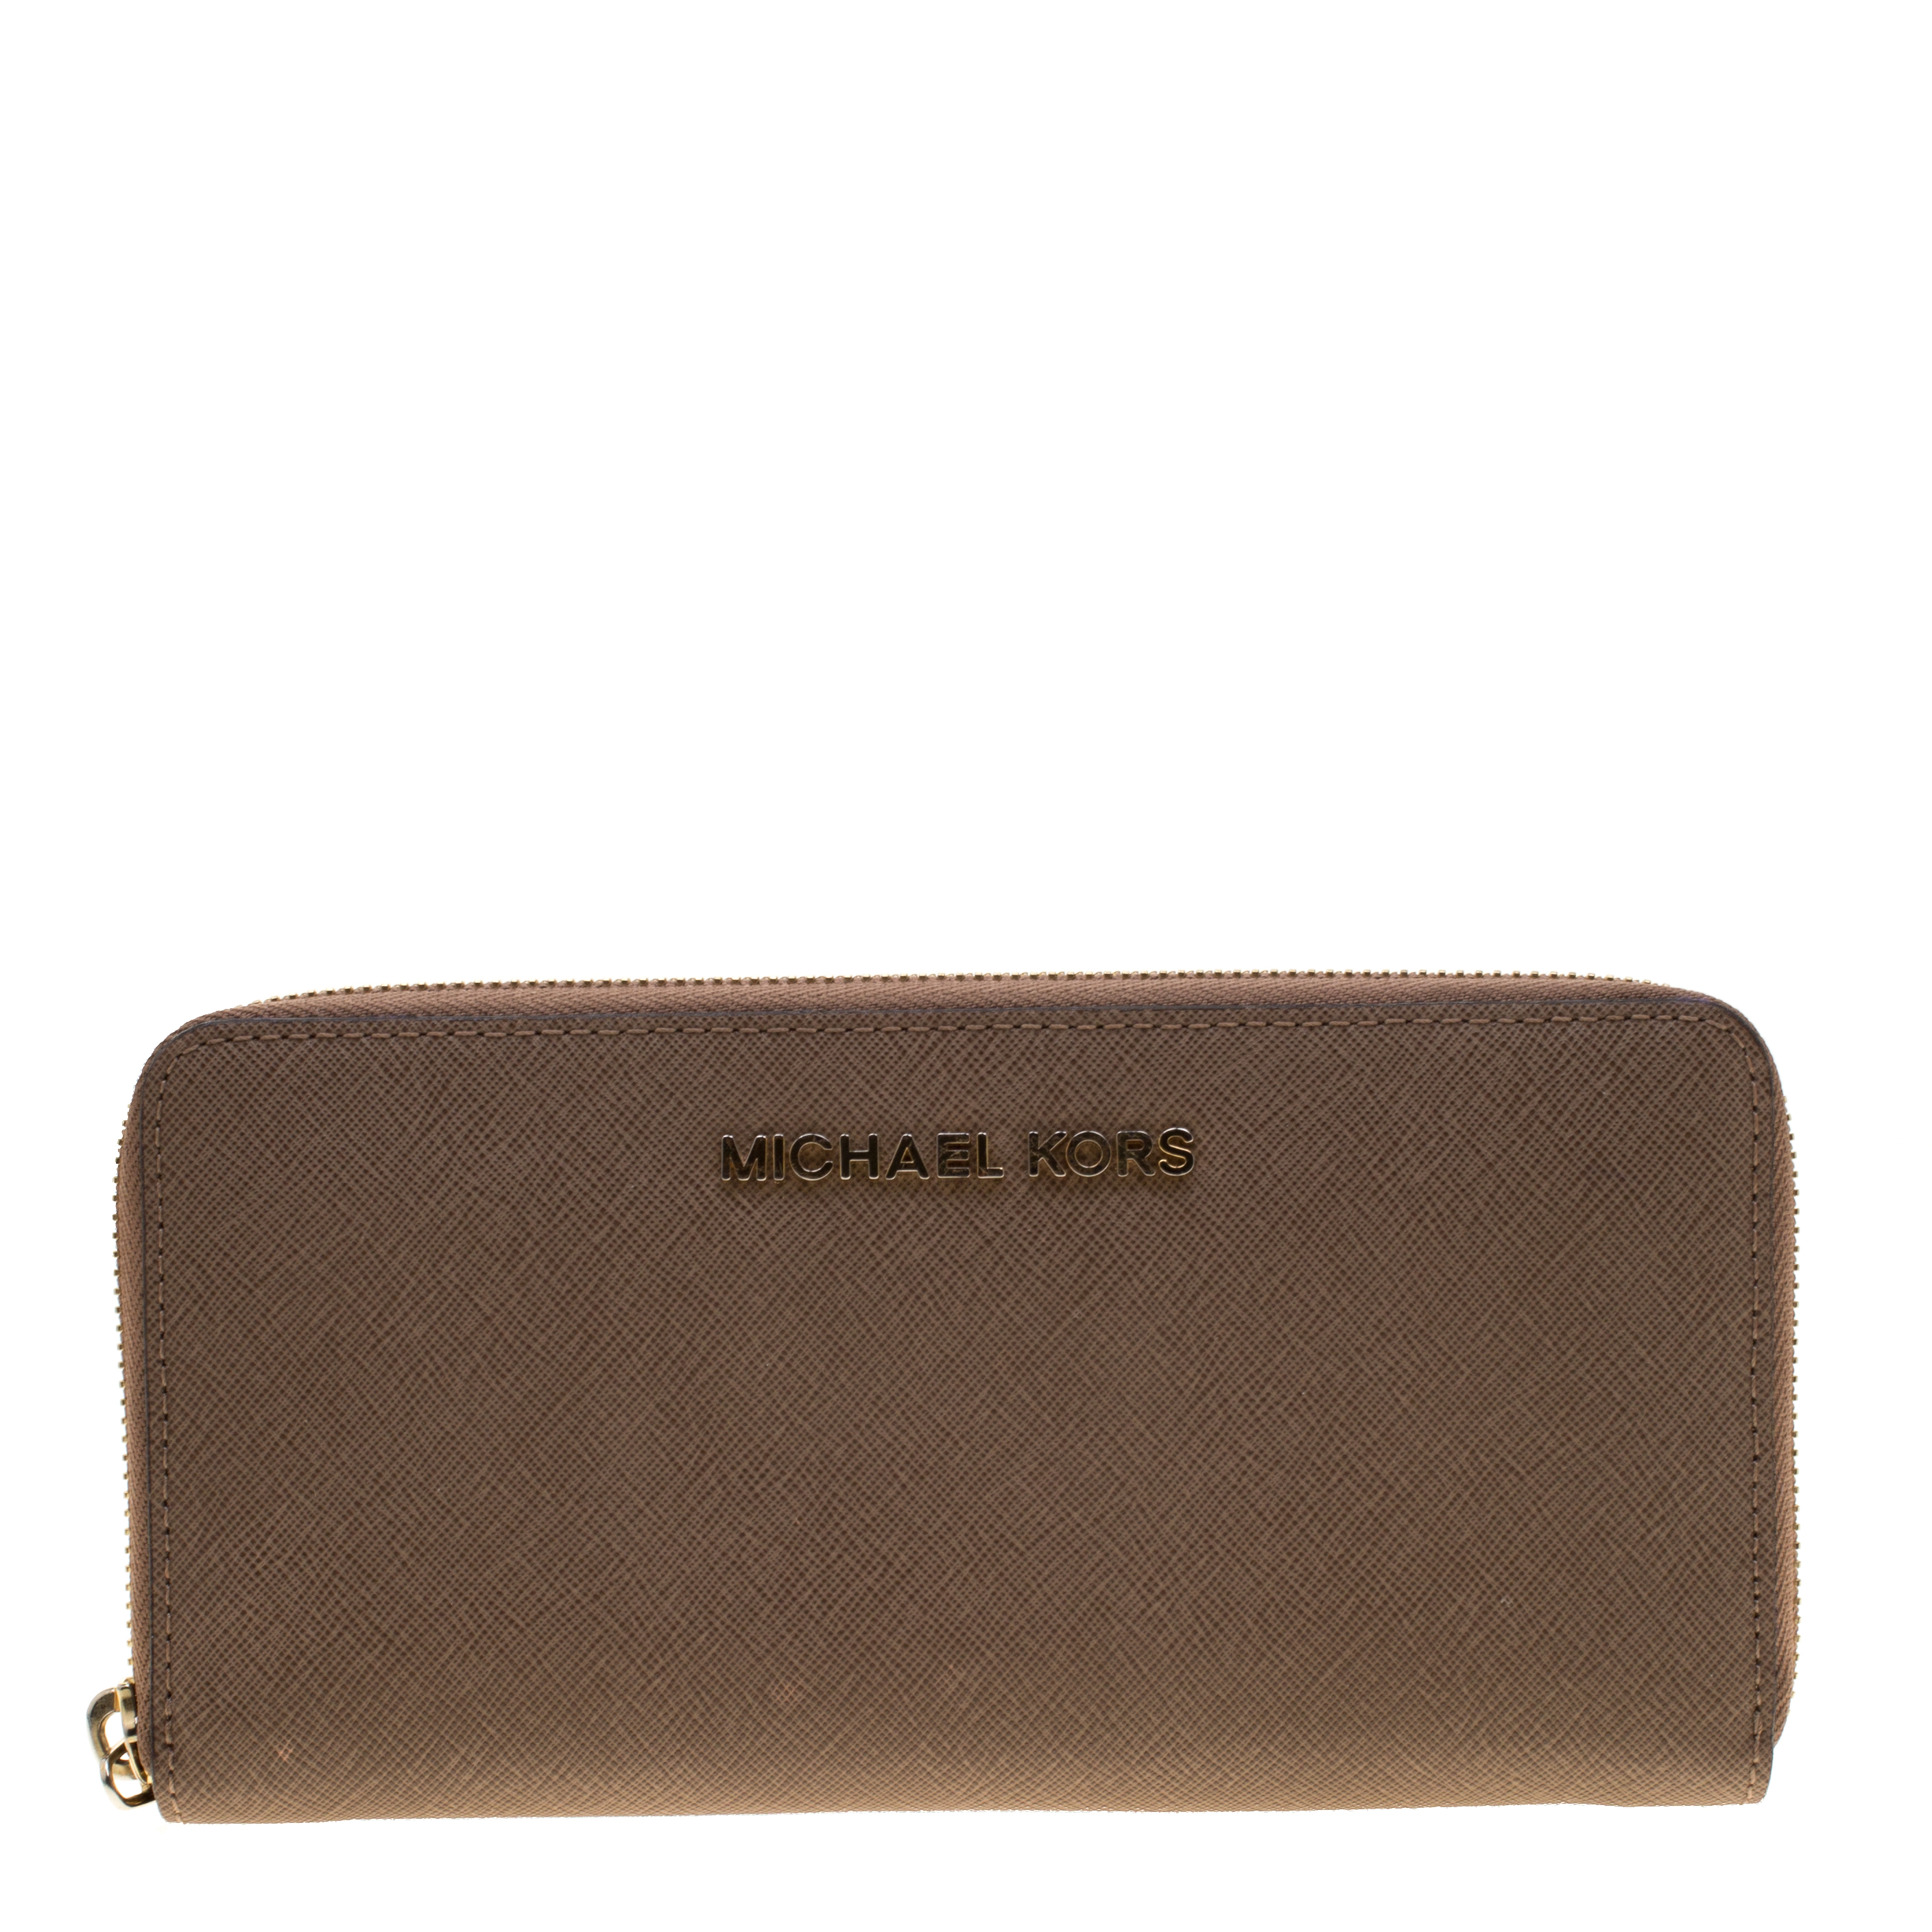 e305827dd127 ... Michael Kors Light Brown Saffiano Leather Zip Around Wallet. nextprev.  prevnext